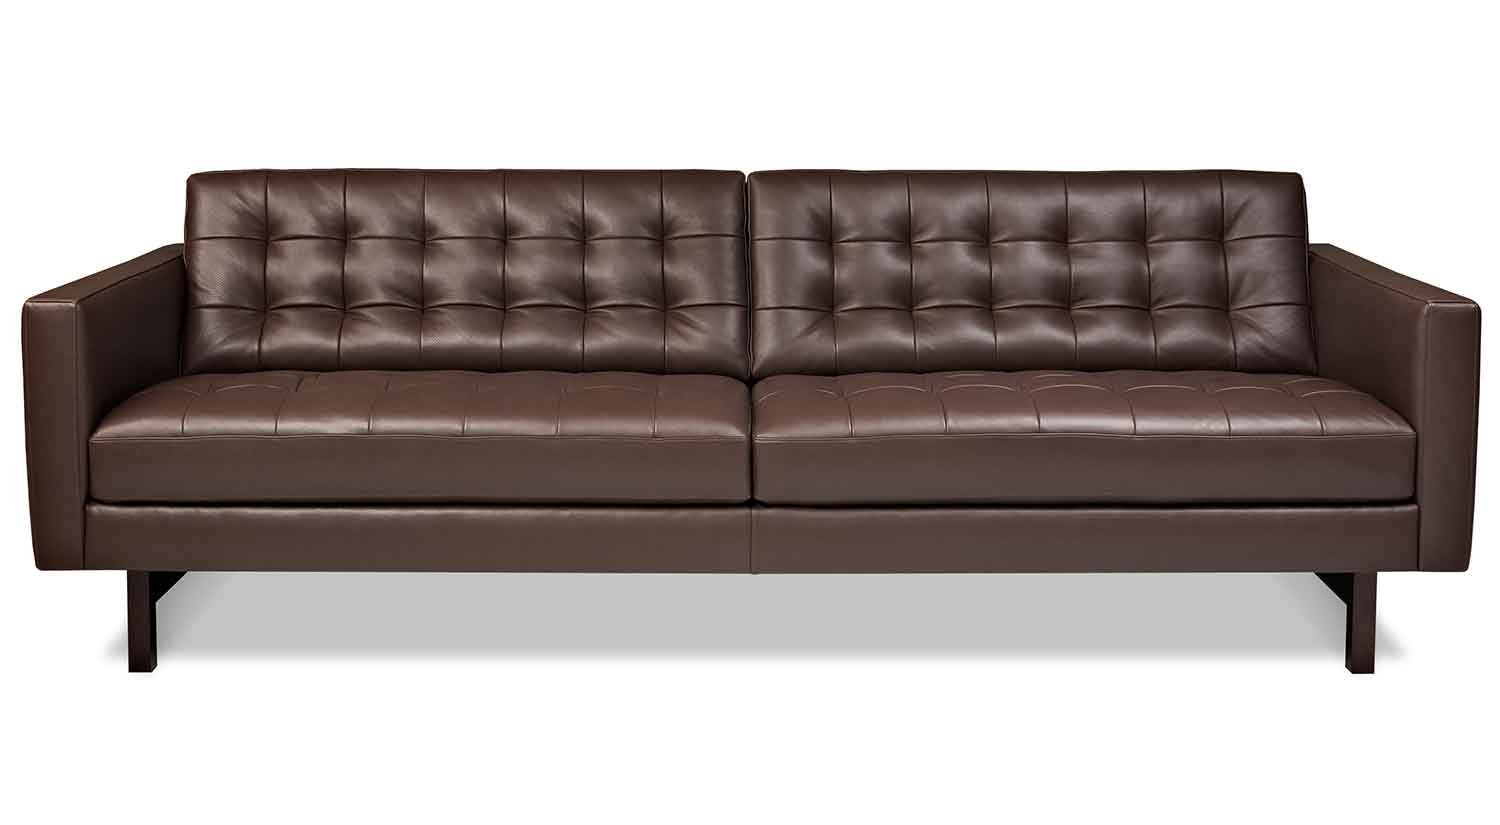 Parker sofa parker sofa havertys thesofa for Trendy furniture